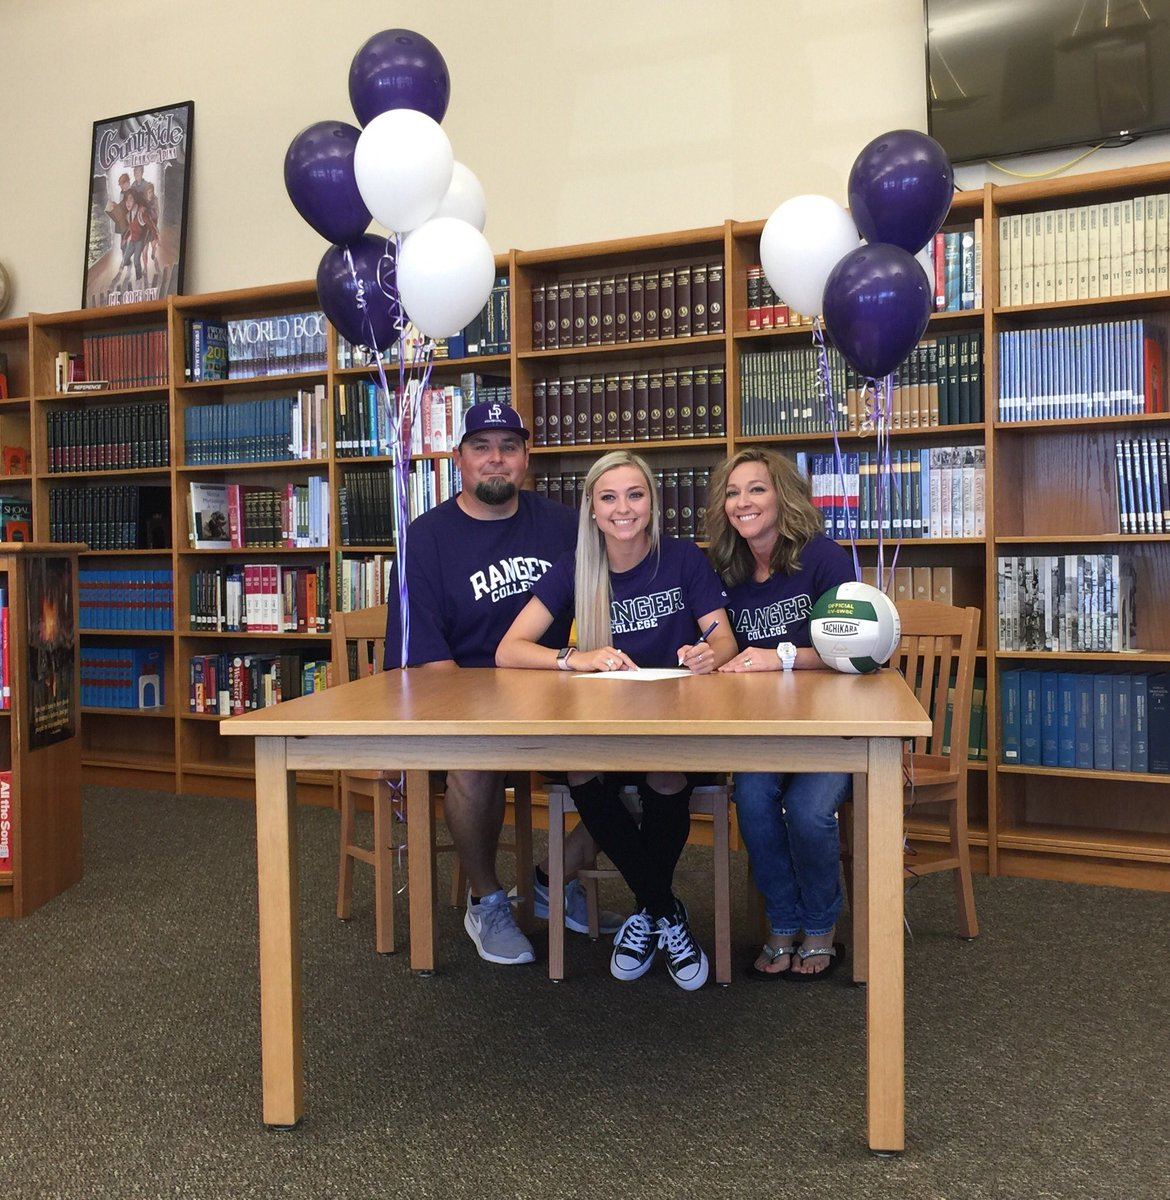 Franklin Isd On Twitter Congratulations To Darby Hughes She Has Signed To Play Volleyball With Ranger College Ranger College